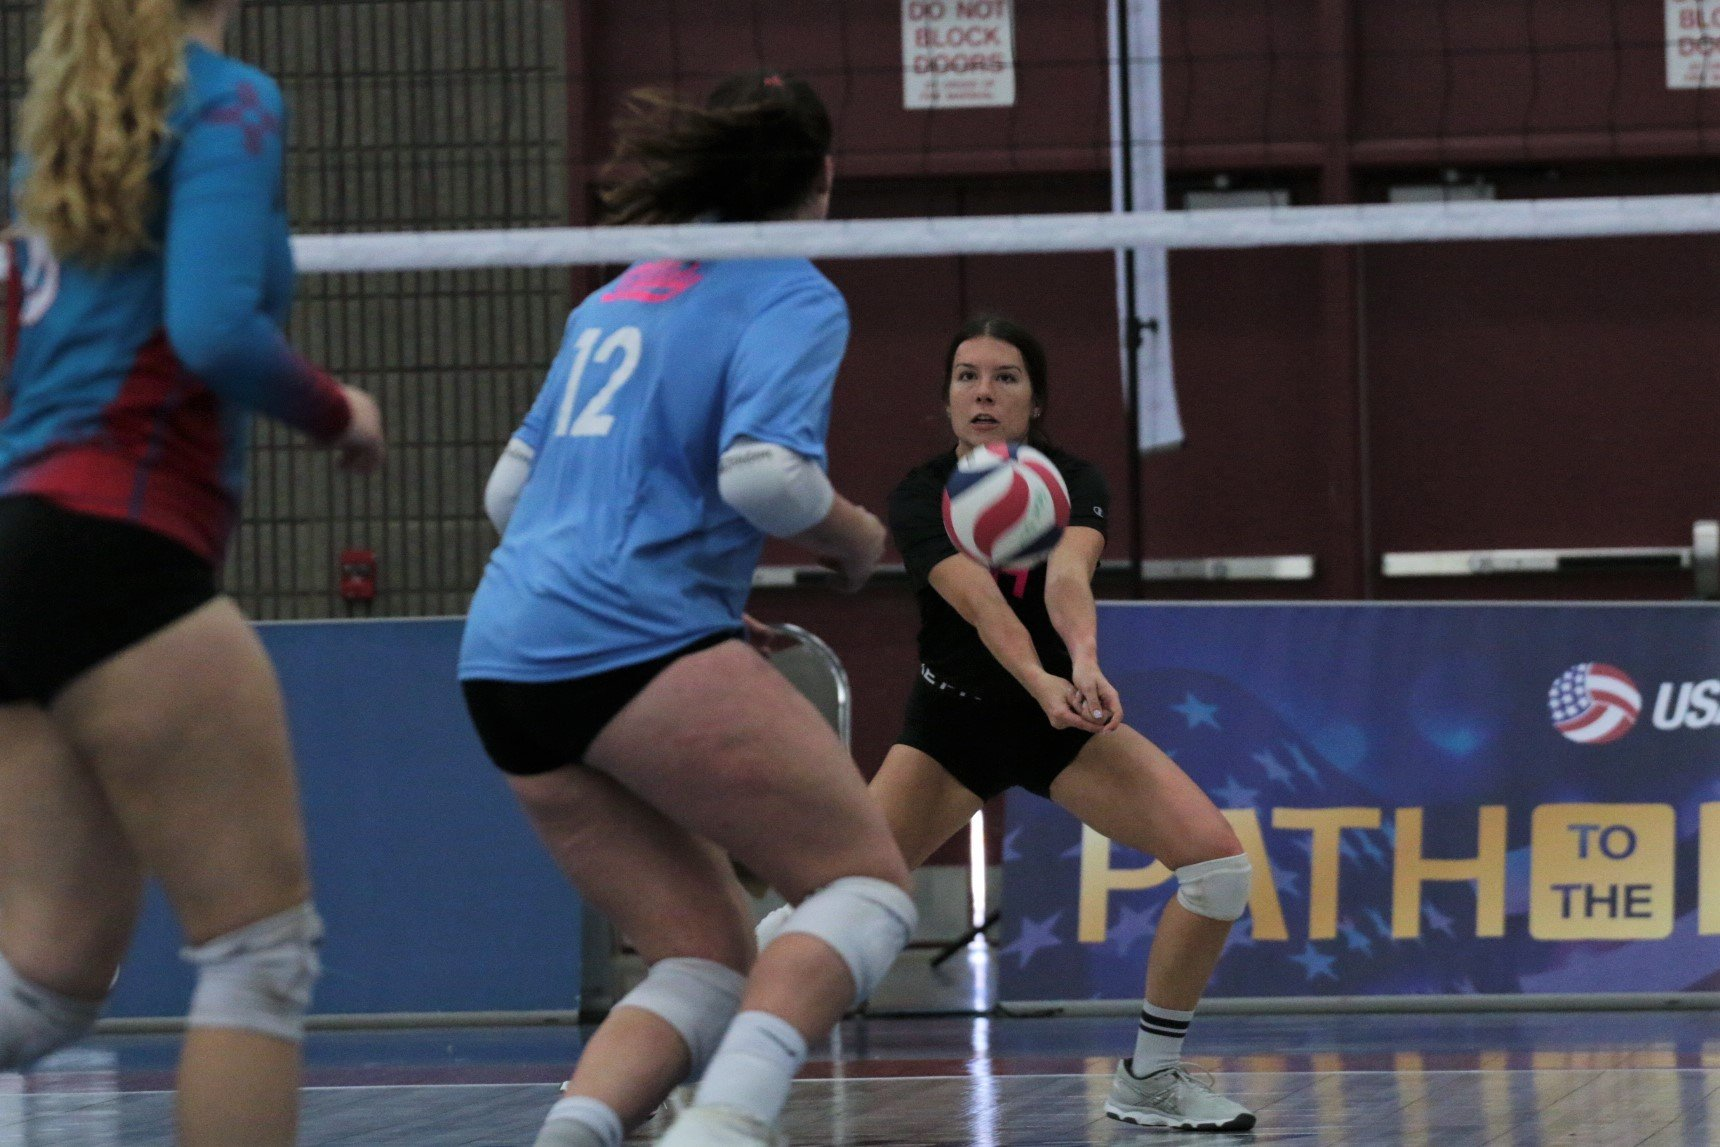 2021 USA Volleyball Open National Championship digging